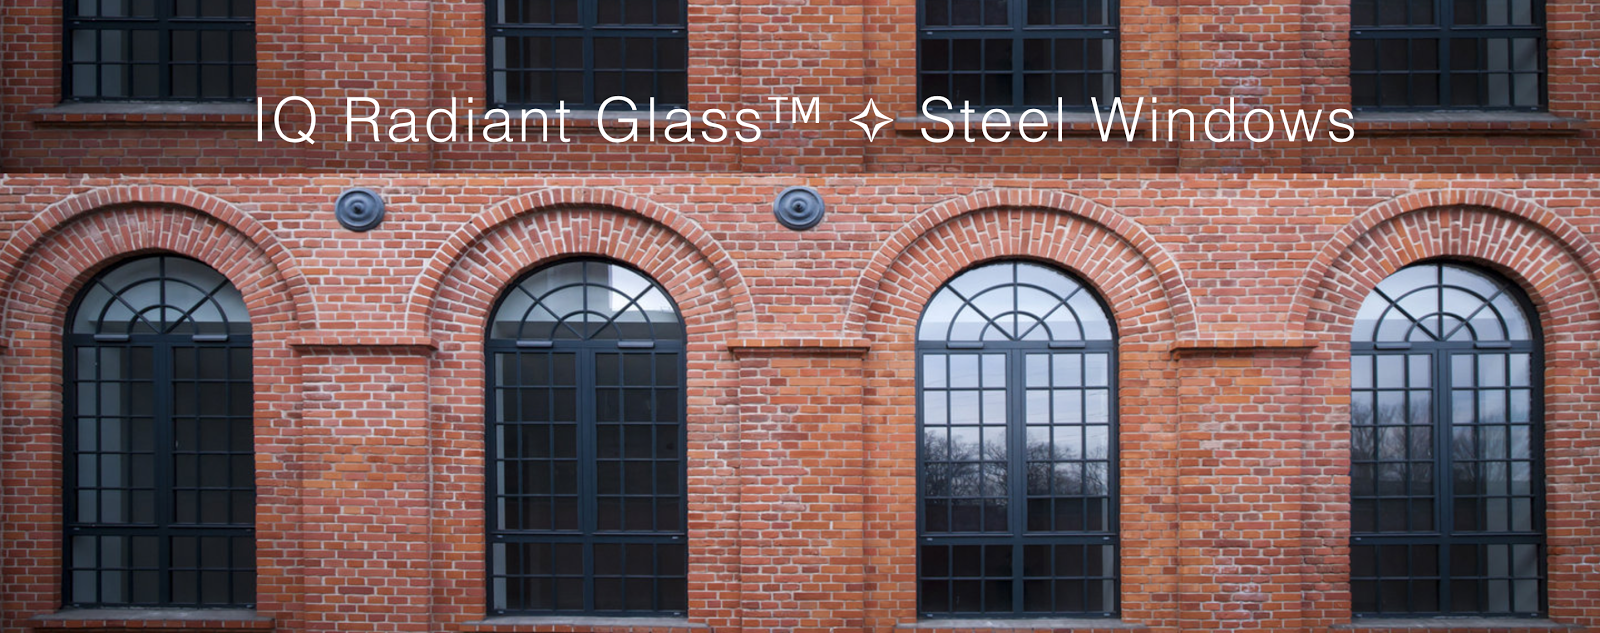 IQ Radiant Glass Window Systems - Solar & PACE